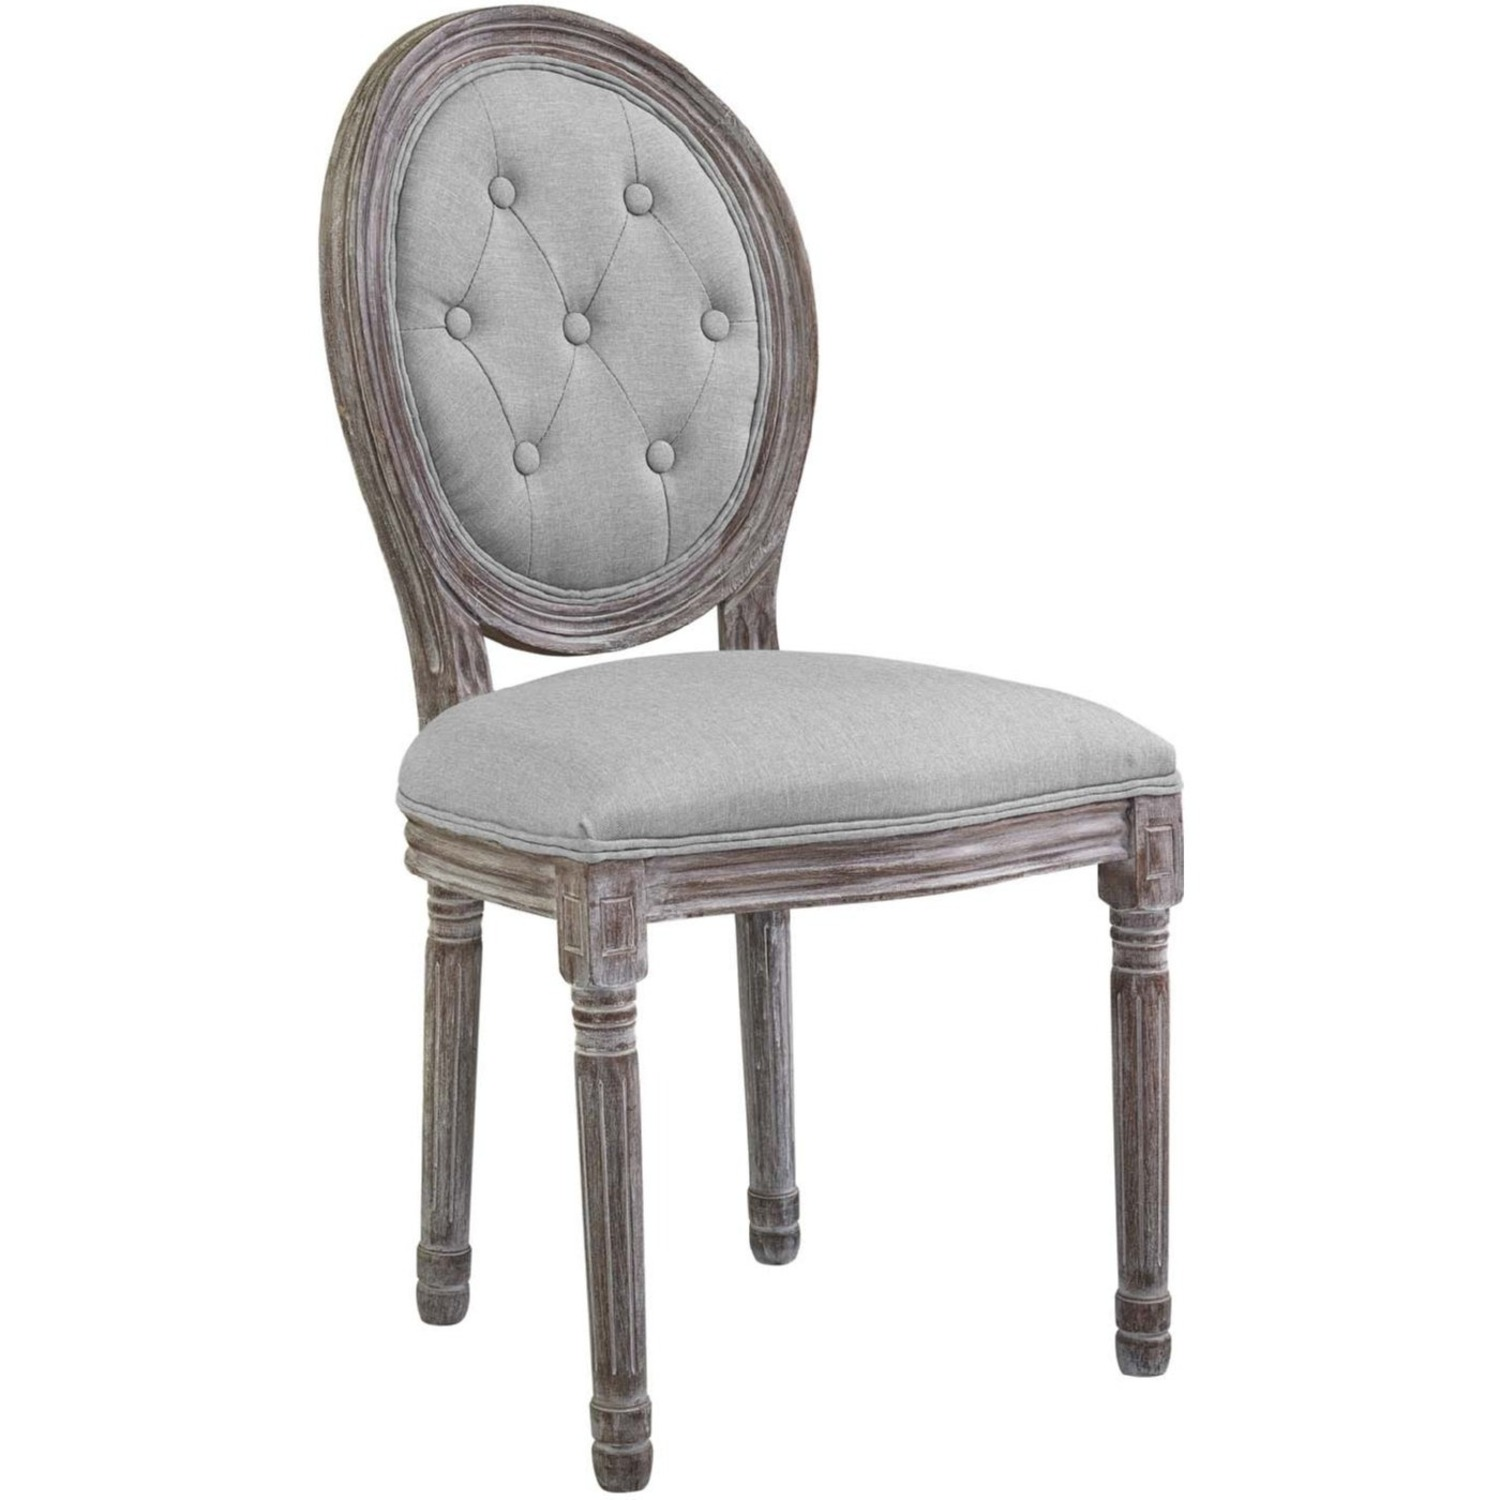 Traditional Dining Chair In Light Gray Finish - image-0